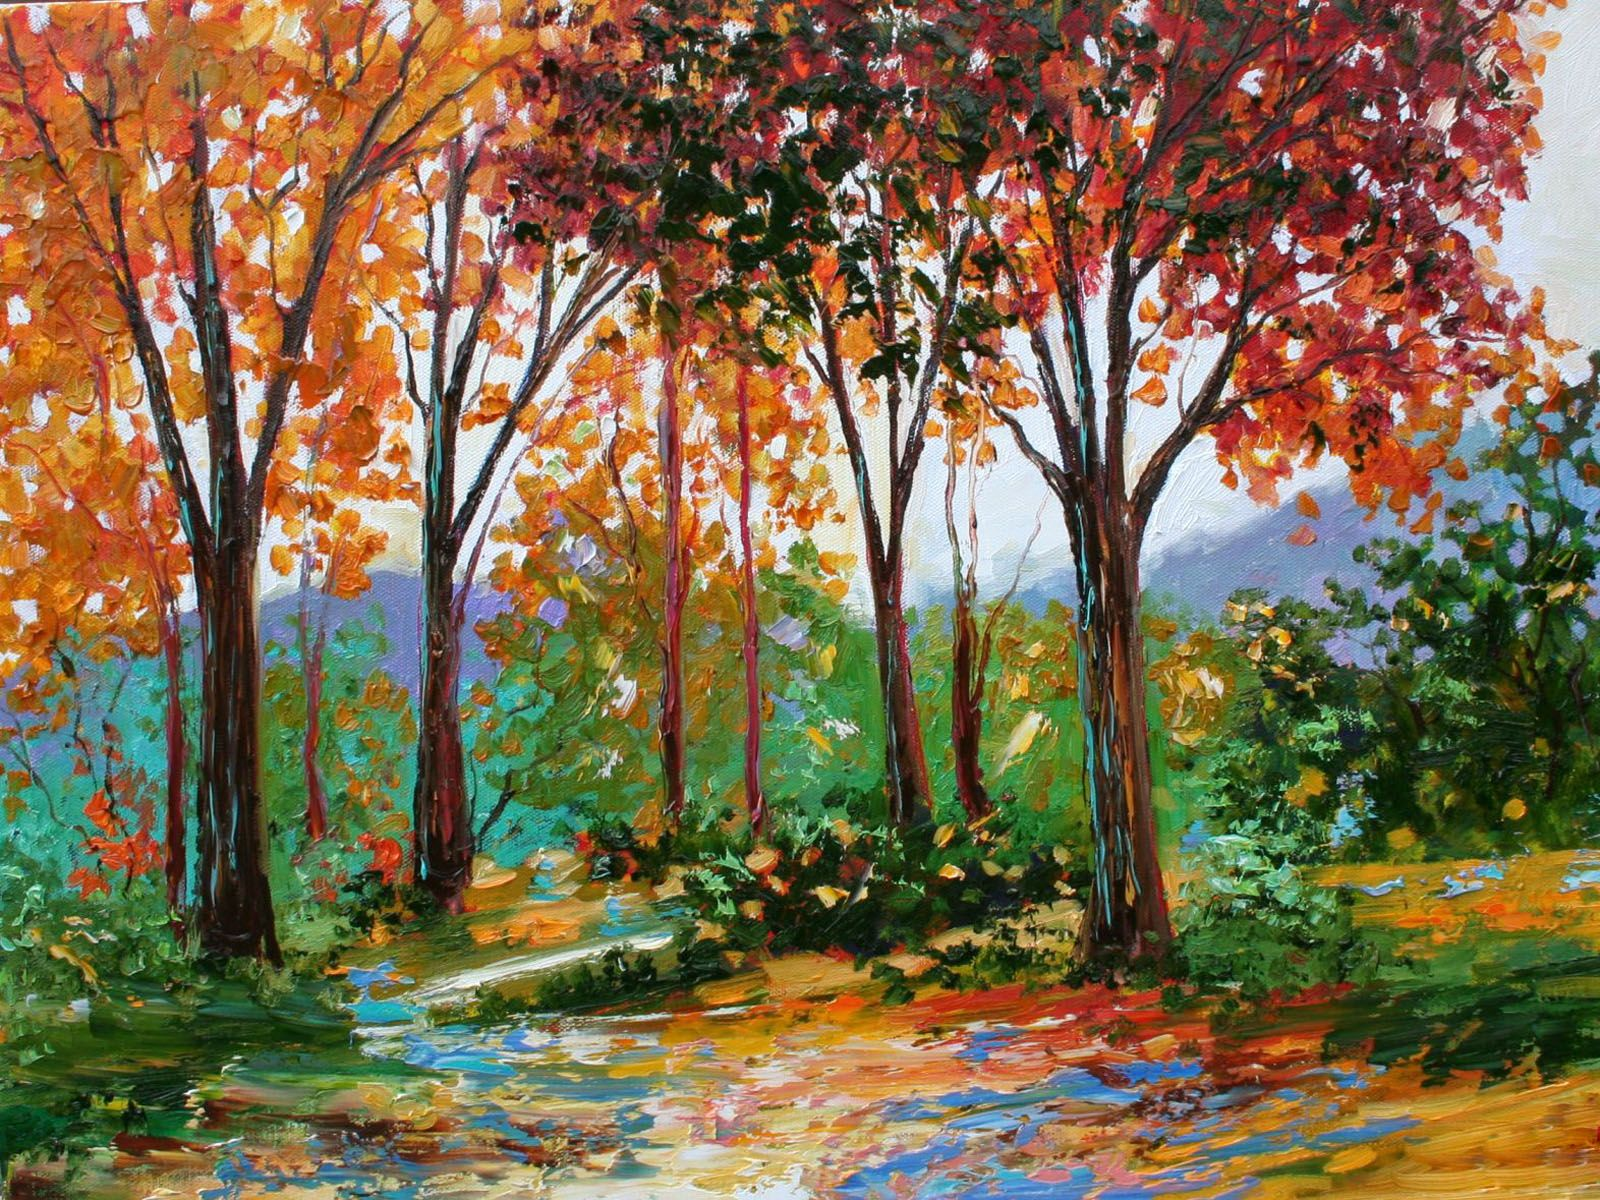 Xs Wallpapers Hd Autumn Oil Paintings Painting Oil Painting Autumn Painting